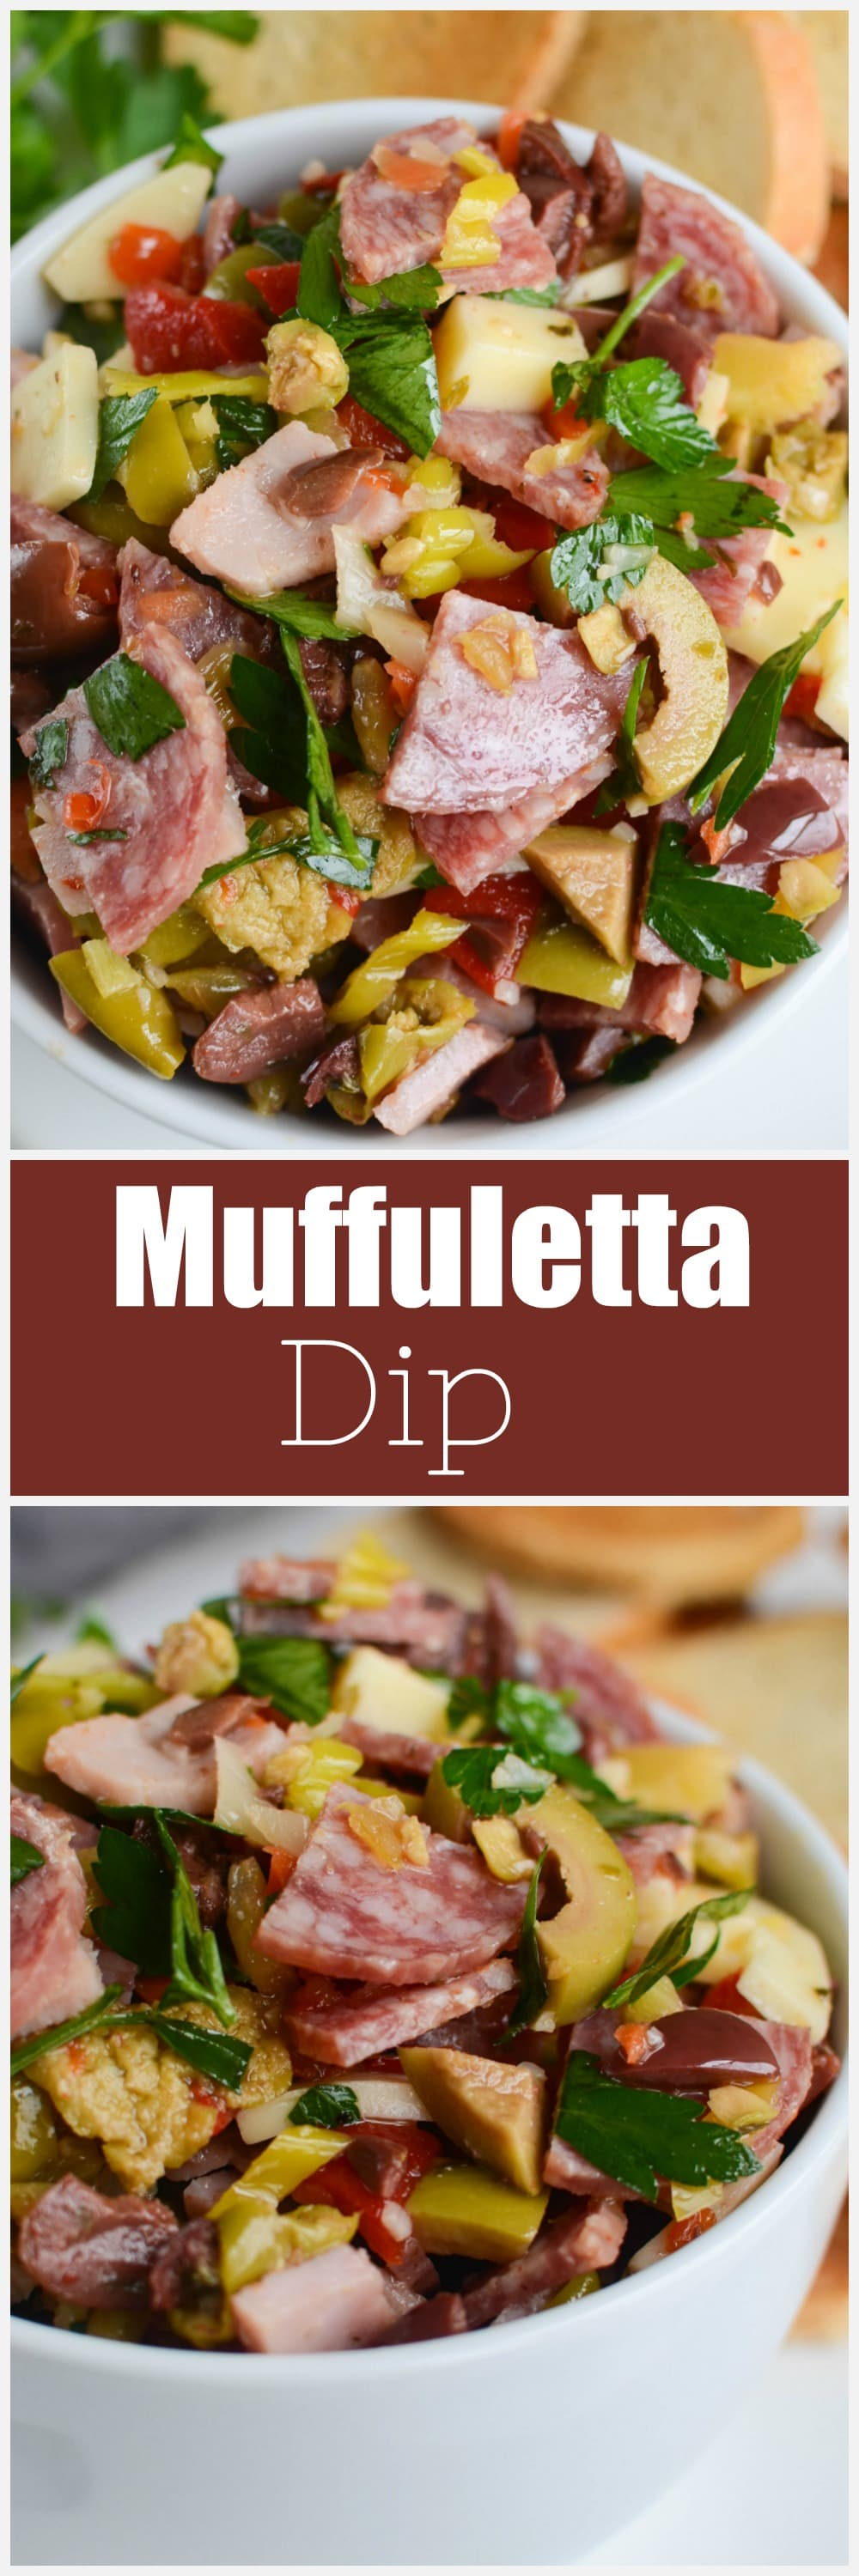 Muffuletta Dip - all the flavors of a delicious muffuletta sandwich in a dip! Olives, roasted red bell pepper, pepperoncini, salami, ham, and provolone cheese all tossed together. Serve on crackers or toasted sliced French bread. Perfect for your Mardi Gras party!